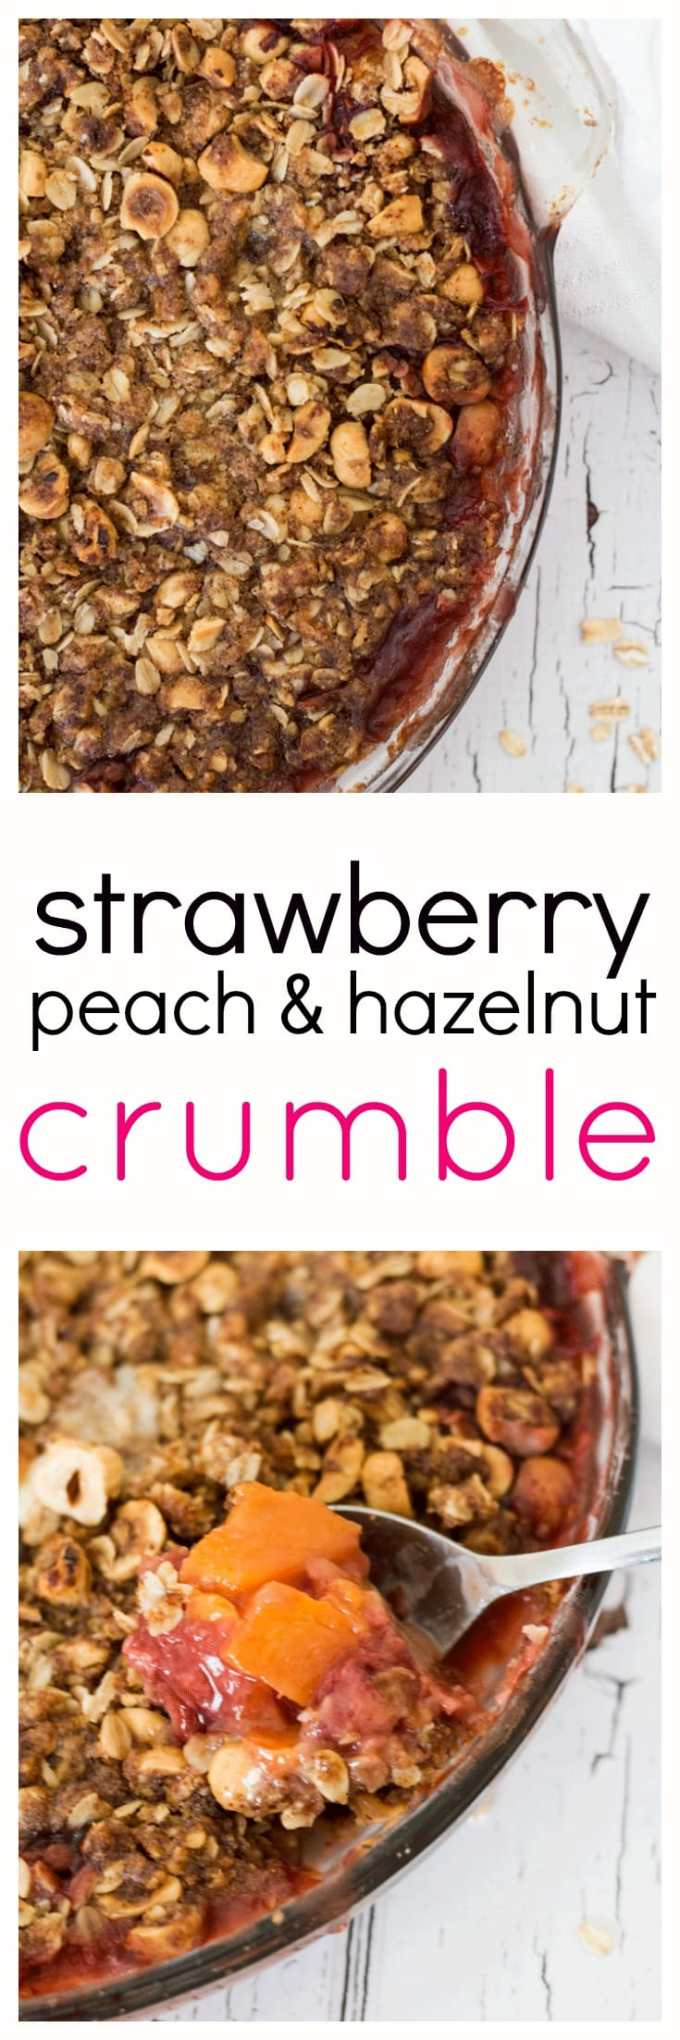 Gather together all of summer's delicious ripe strawberries and peaches and cram them into this delicious Strawberry Peach and Hazelnut Crumble. A delicious after dinner treat full of the goodness of whole grains, roasted hazelnuts and real fruit. No refined sugar needed.